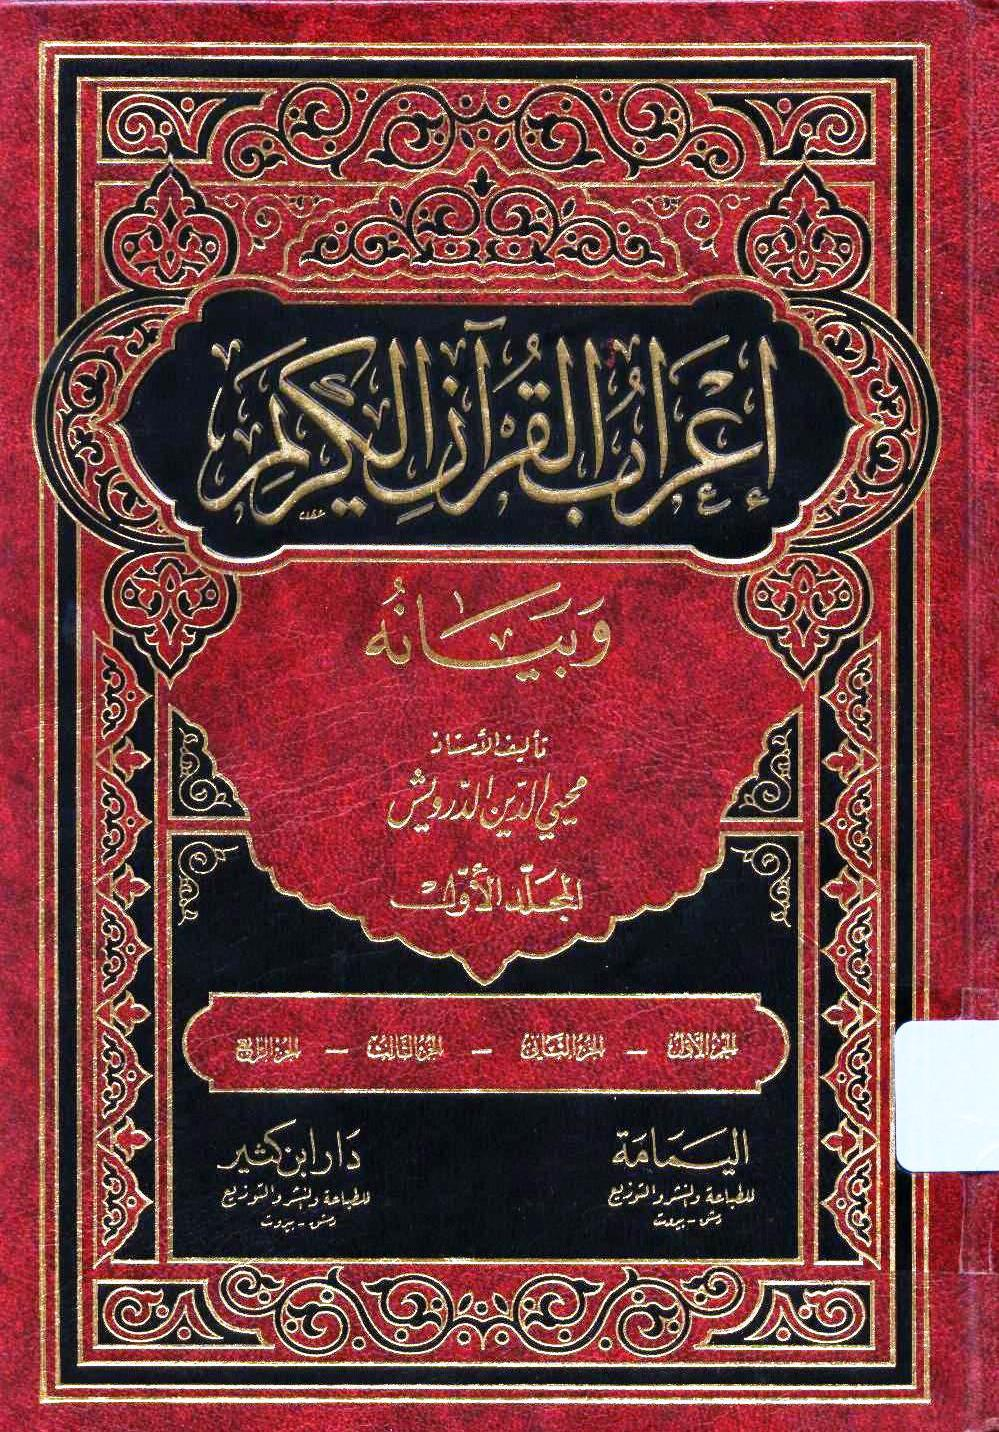 an analysis of the topic of the muslims of the quran Quran is the most important religious book of islam religion and the muslim community according to the islam religion, the discourses contained in the quran were.